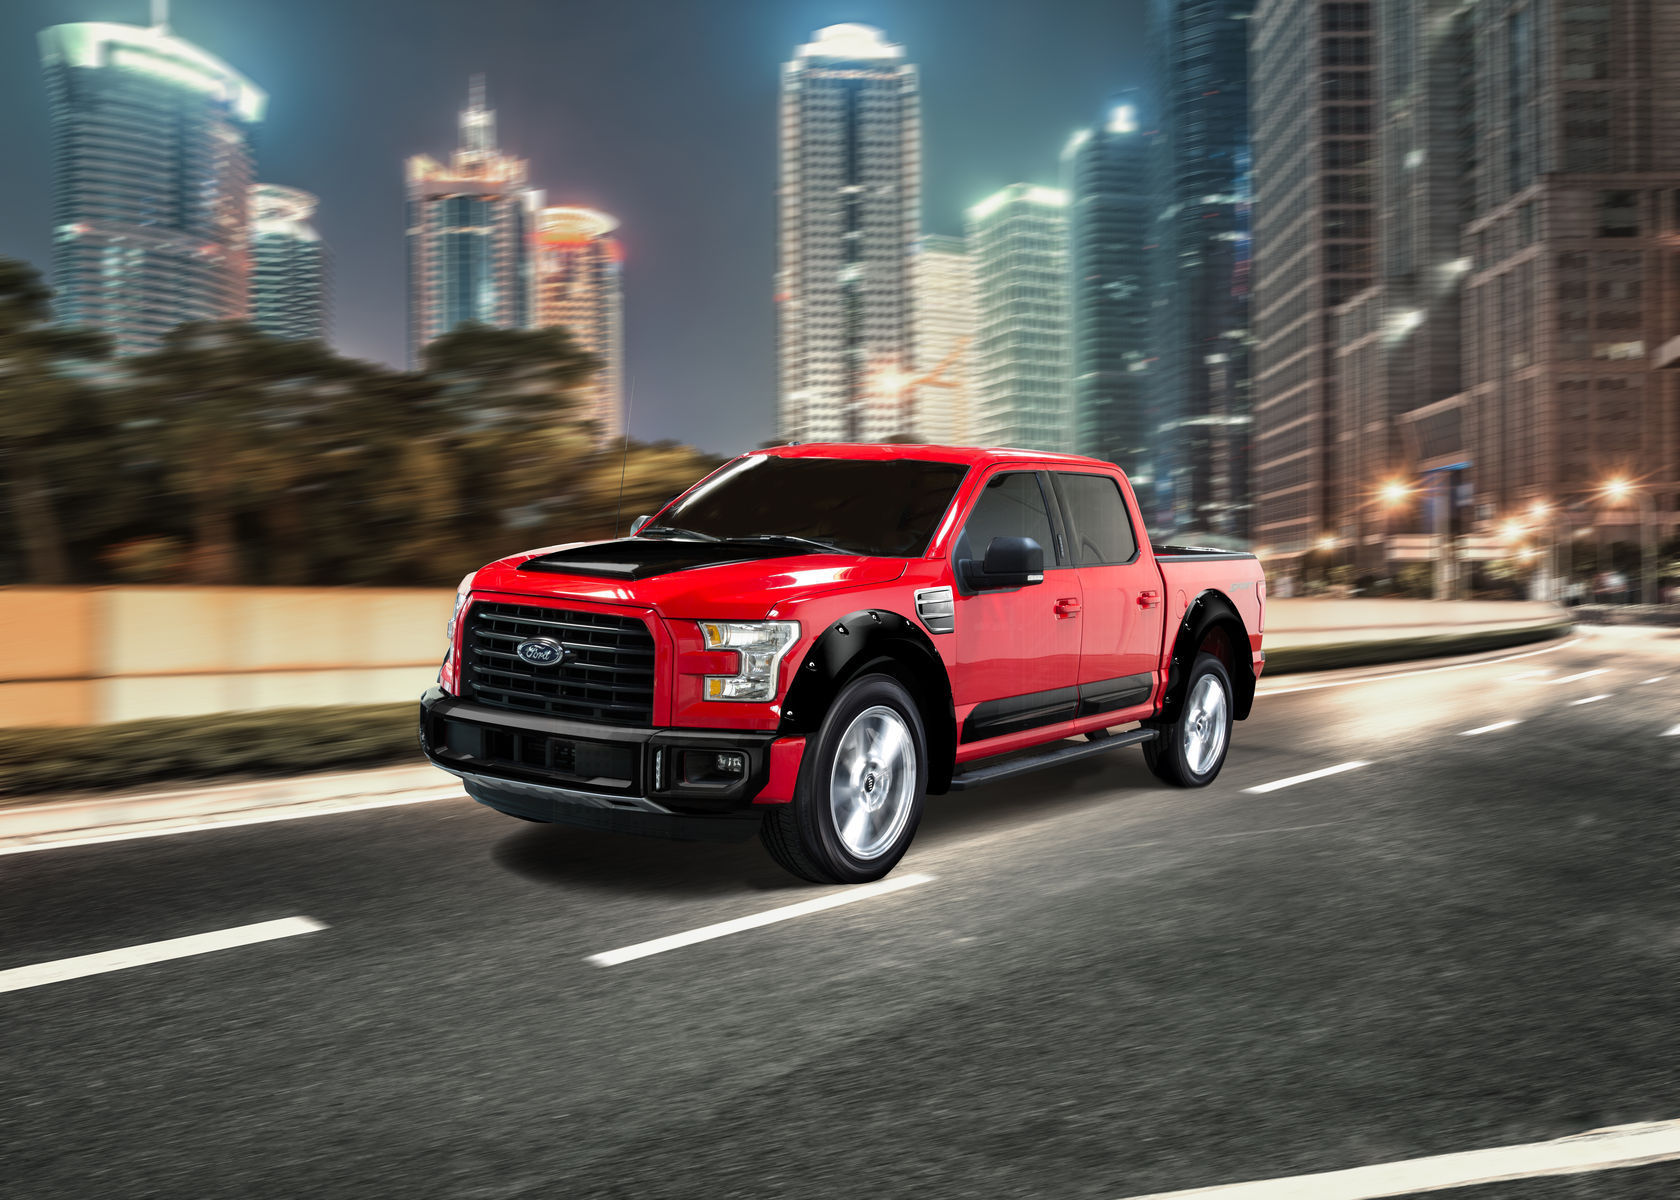 2015 Ford F-150 | 2015 AIRDESIGN Ford F-150 - Rolling Shot